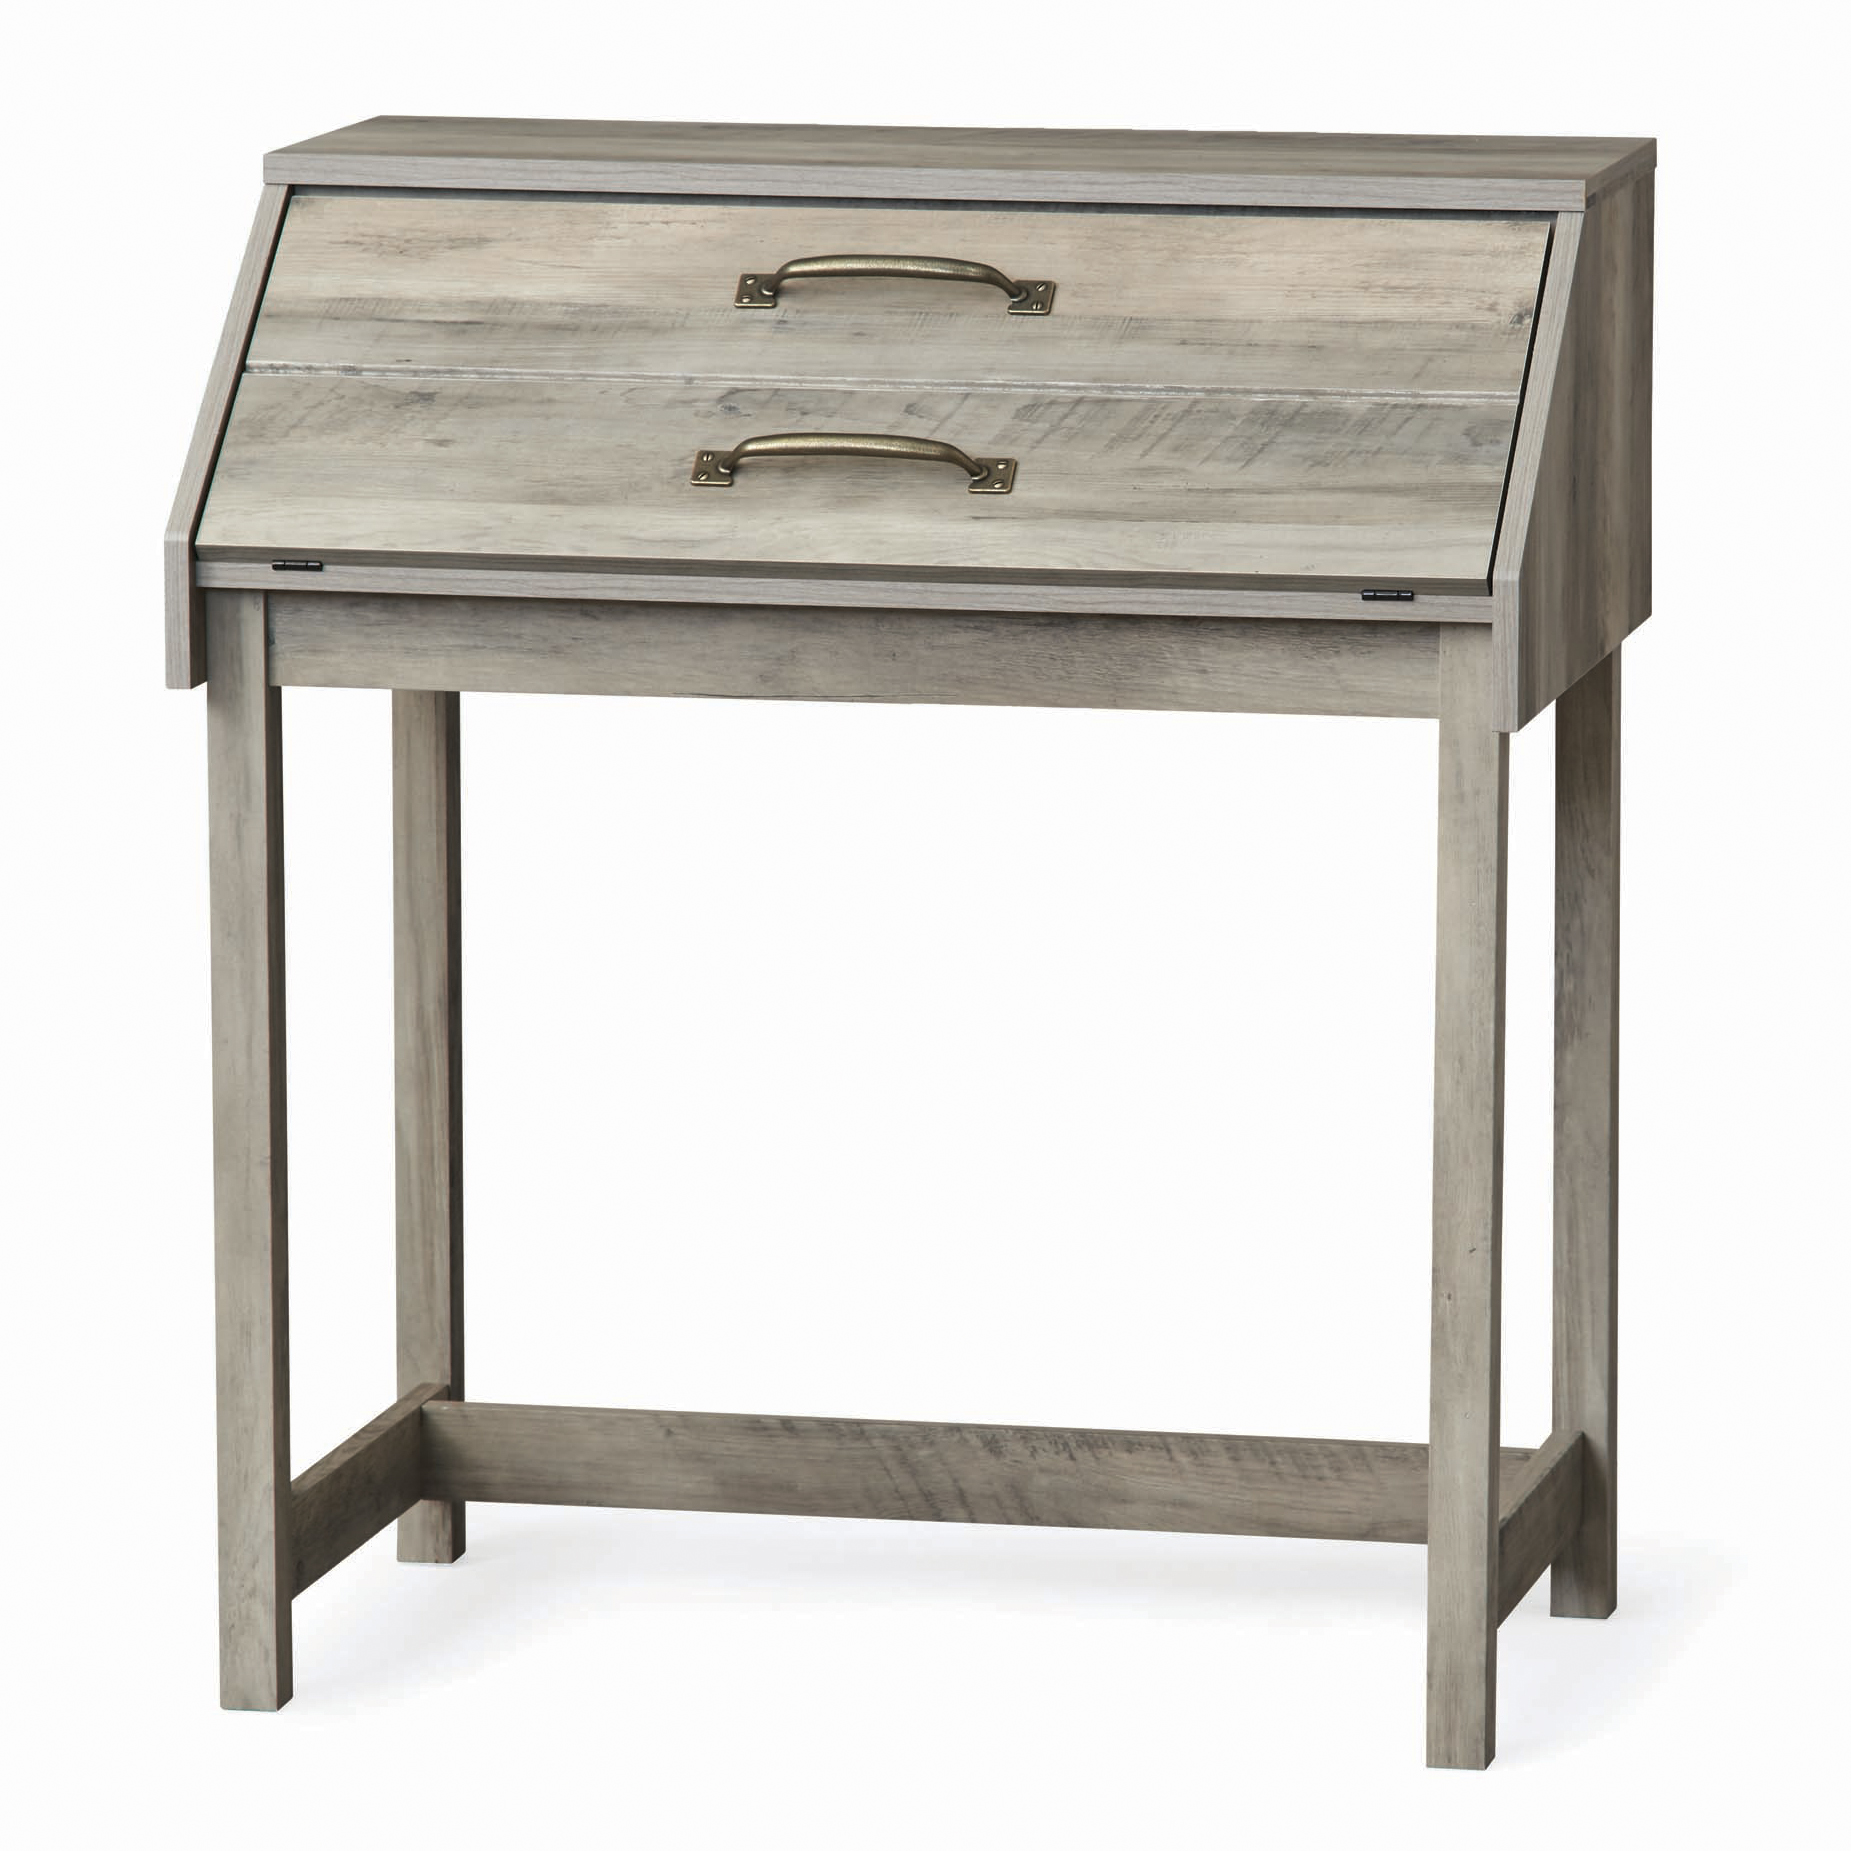 Better Homes And Gardens Modern Farmhouse Secretary Desk, Rustic Gray Finish